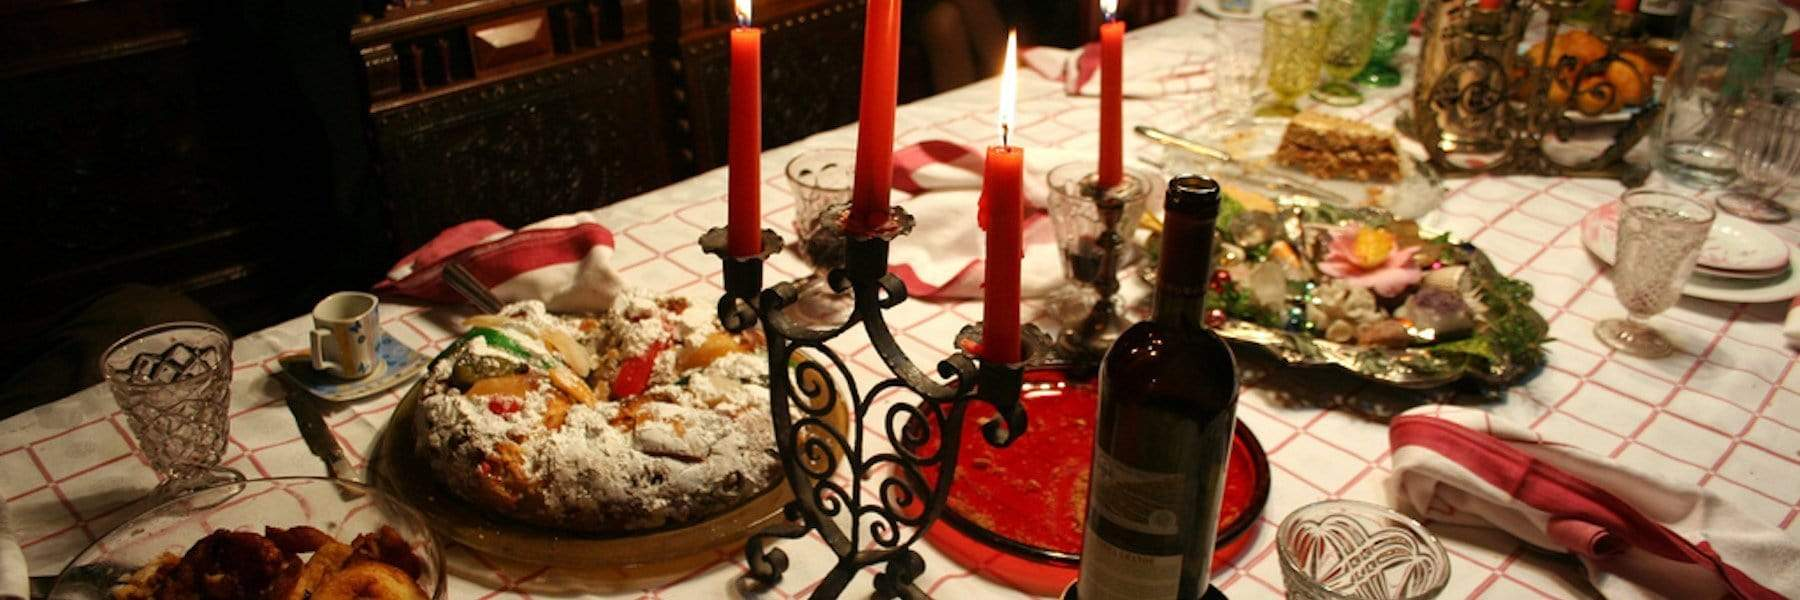 Tradition De Noel Christmas traditions in Portugal – Luisa Paixao I Traditional